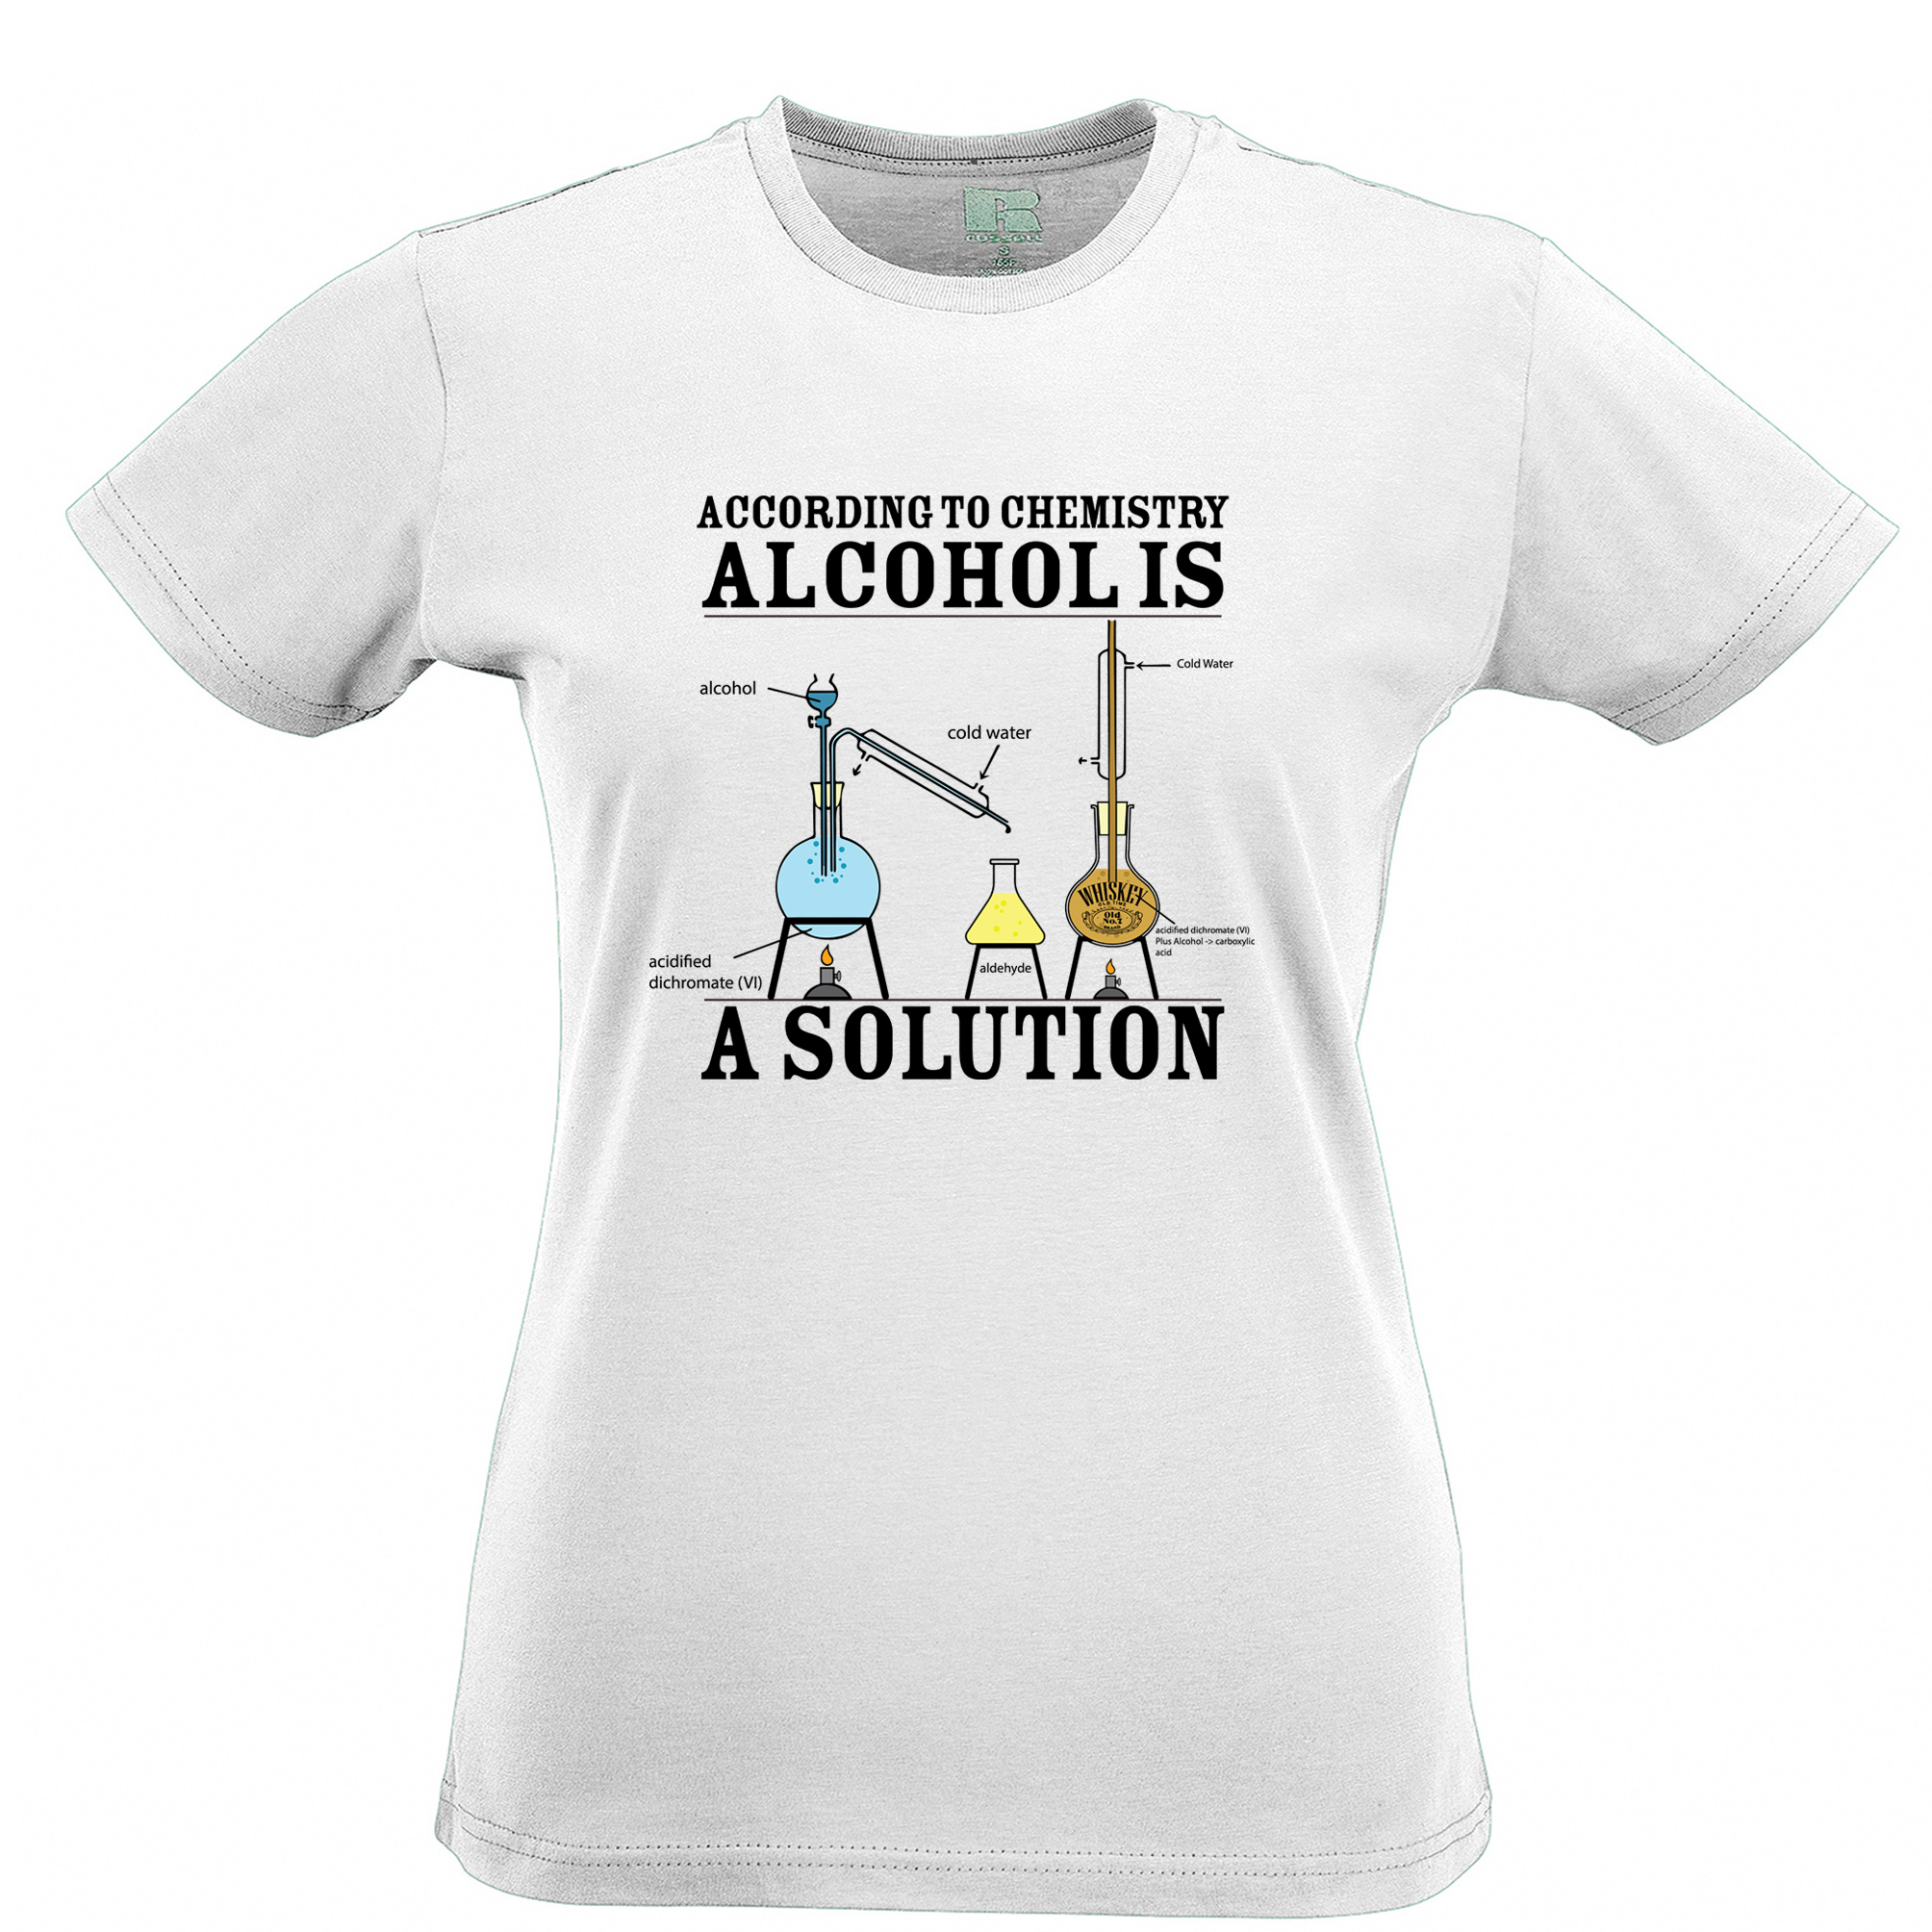 According the font b chemistry b font alcohol is the solution Men s T shirt for